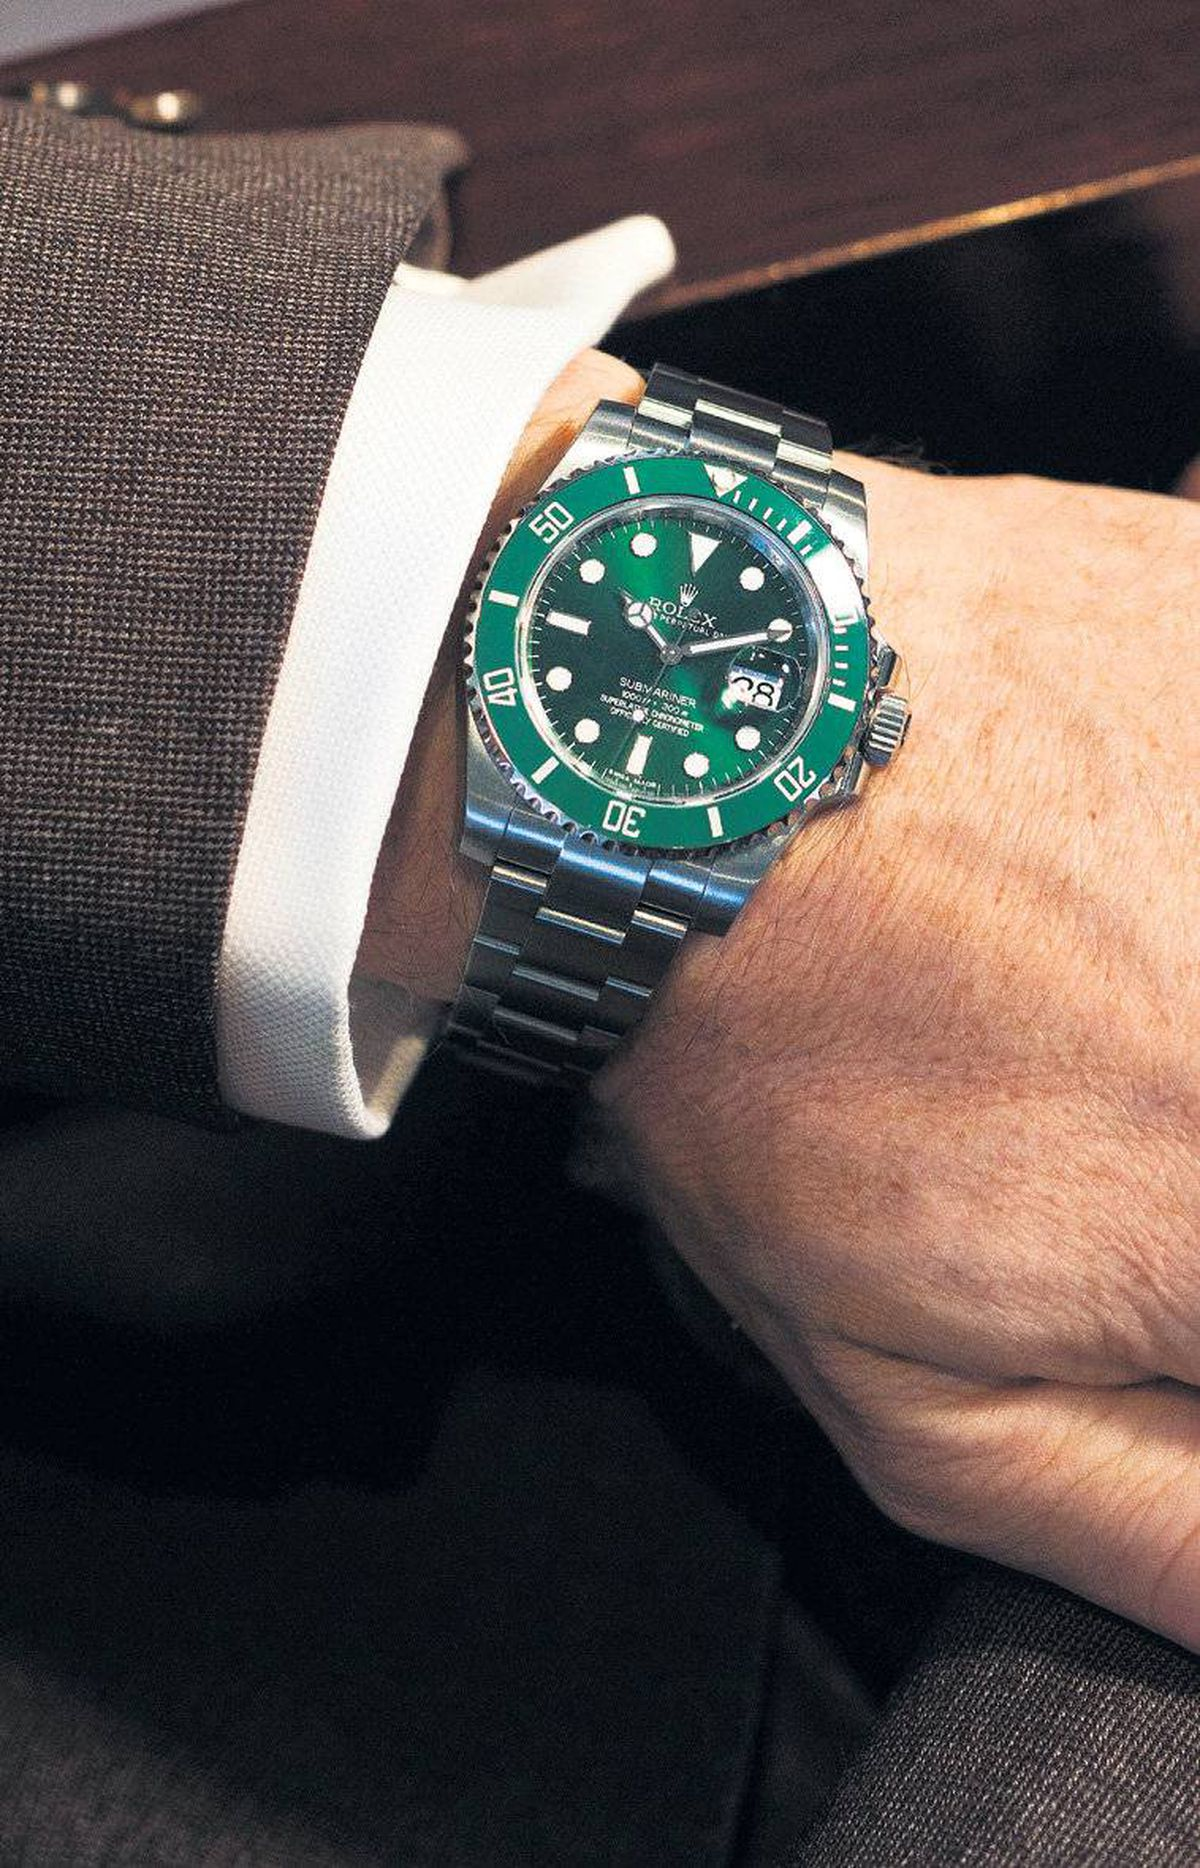 Many watch makers did not anticipate demand to rebound so strongly after the 2009 spending slump.